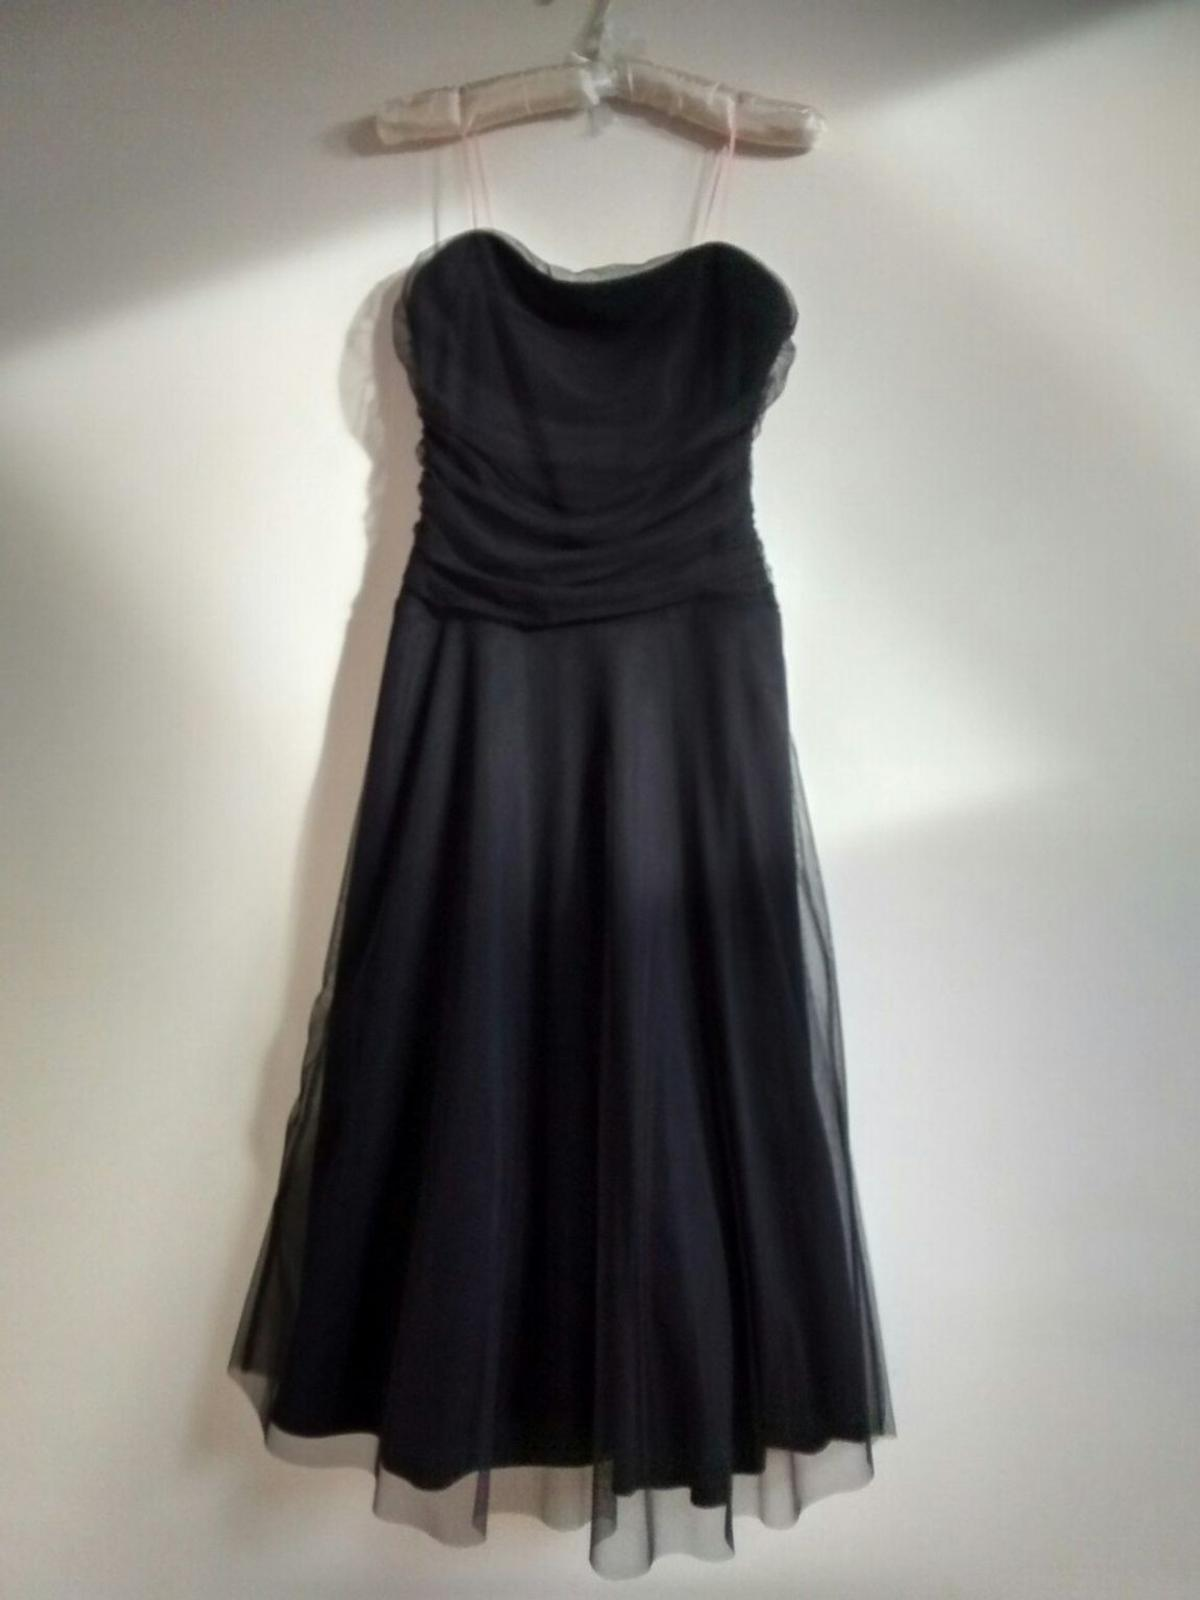 House Of Fraser Black Tulle Ball Gown In 1051re Amsterdam For 85 00 For Sale Shpock